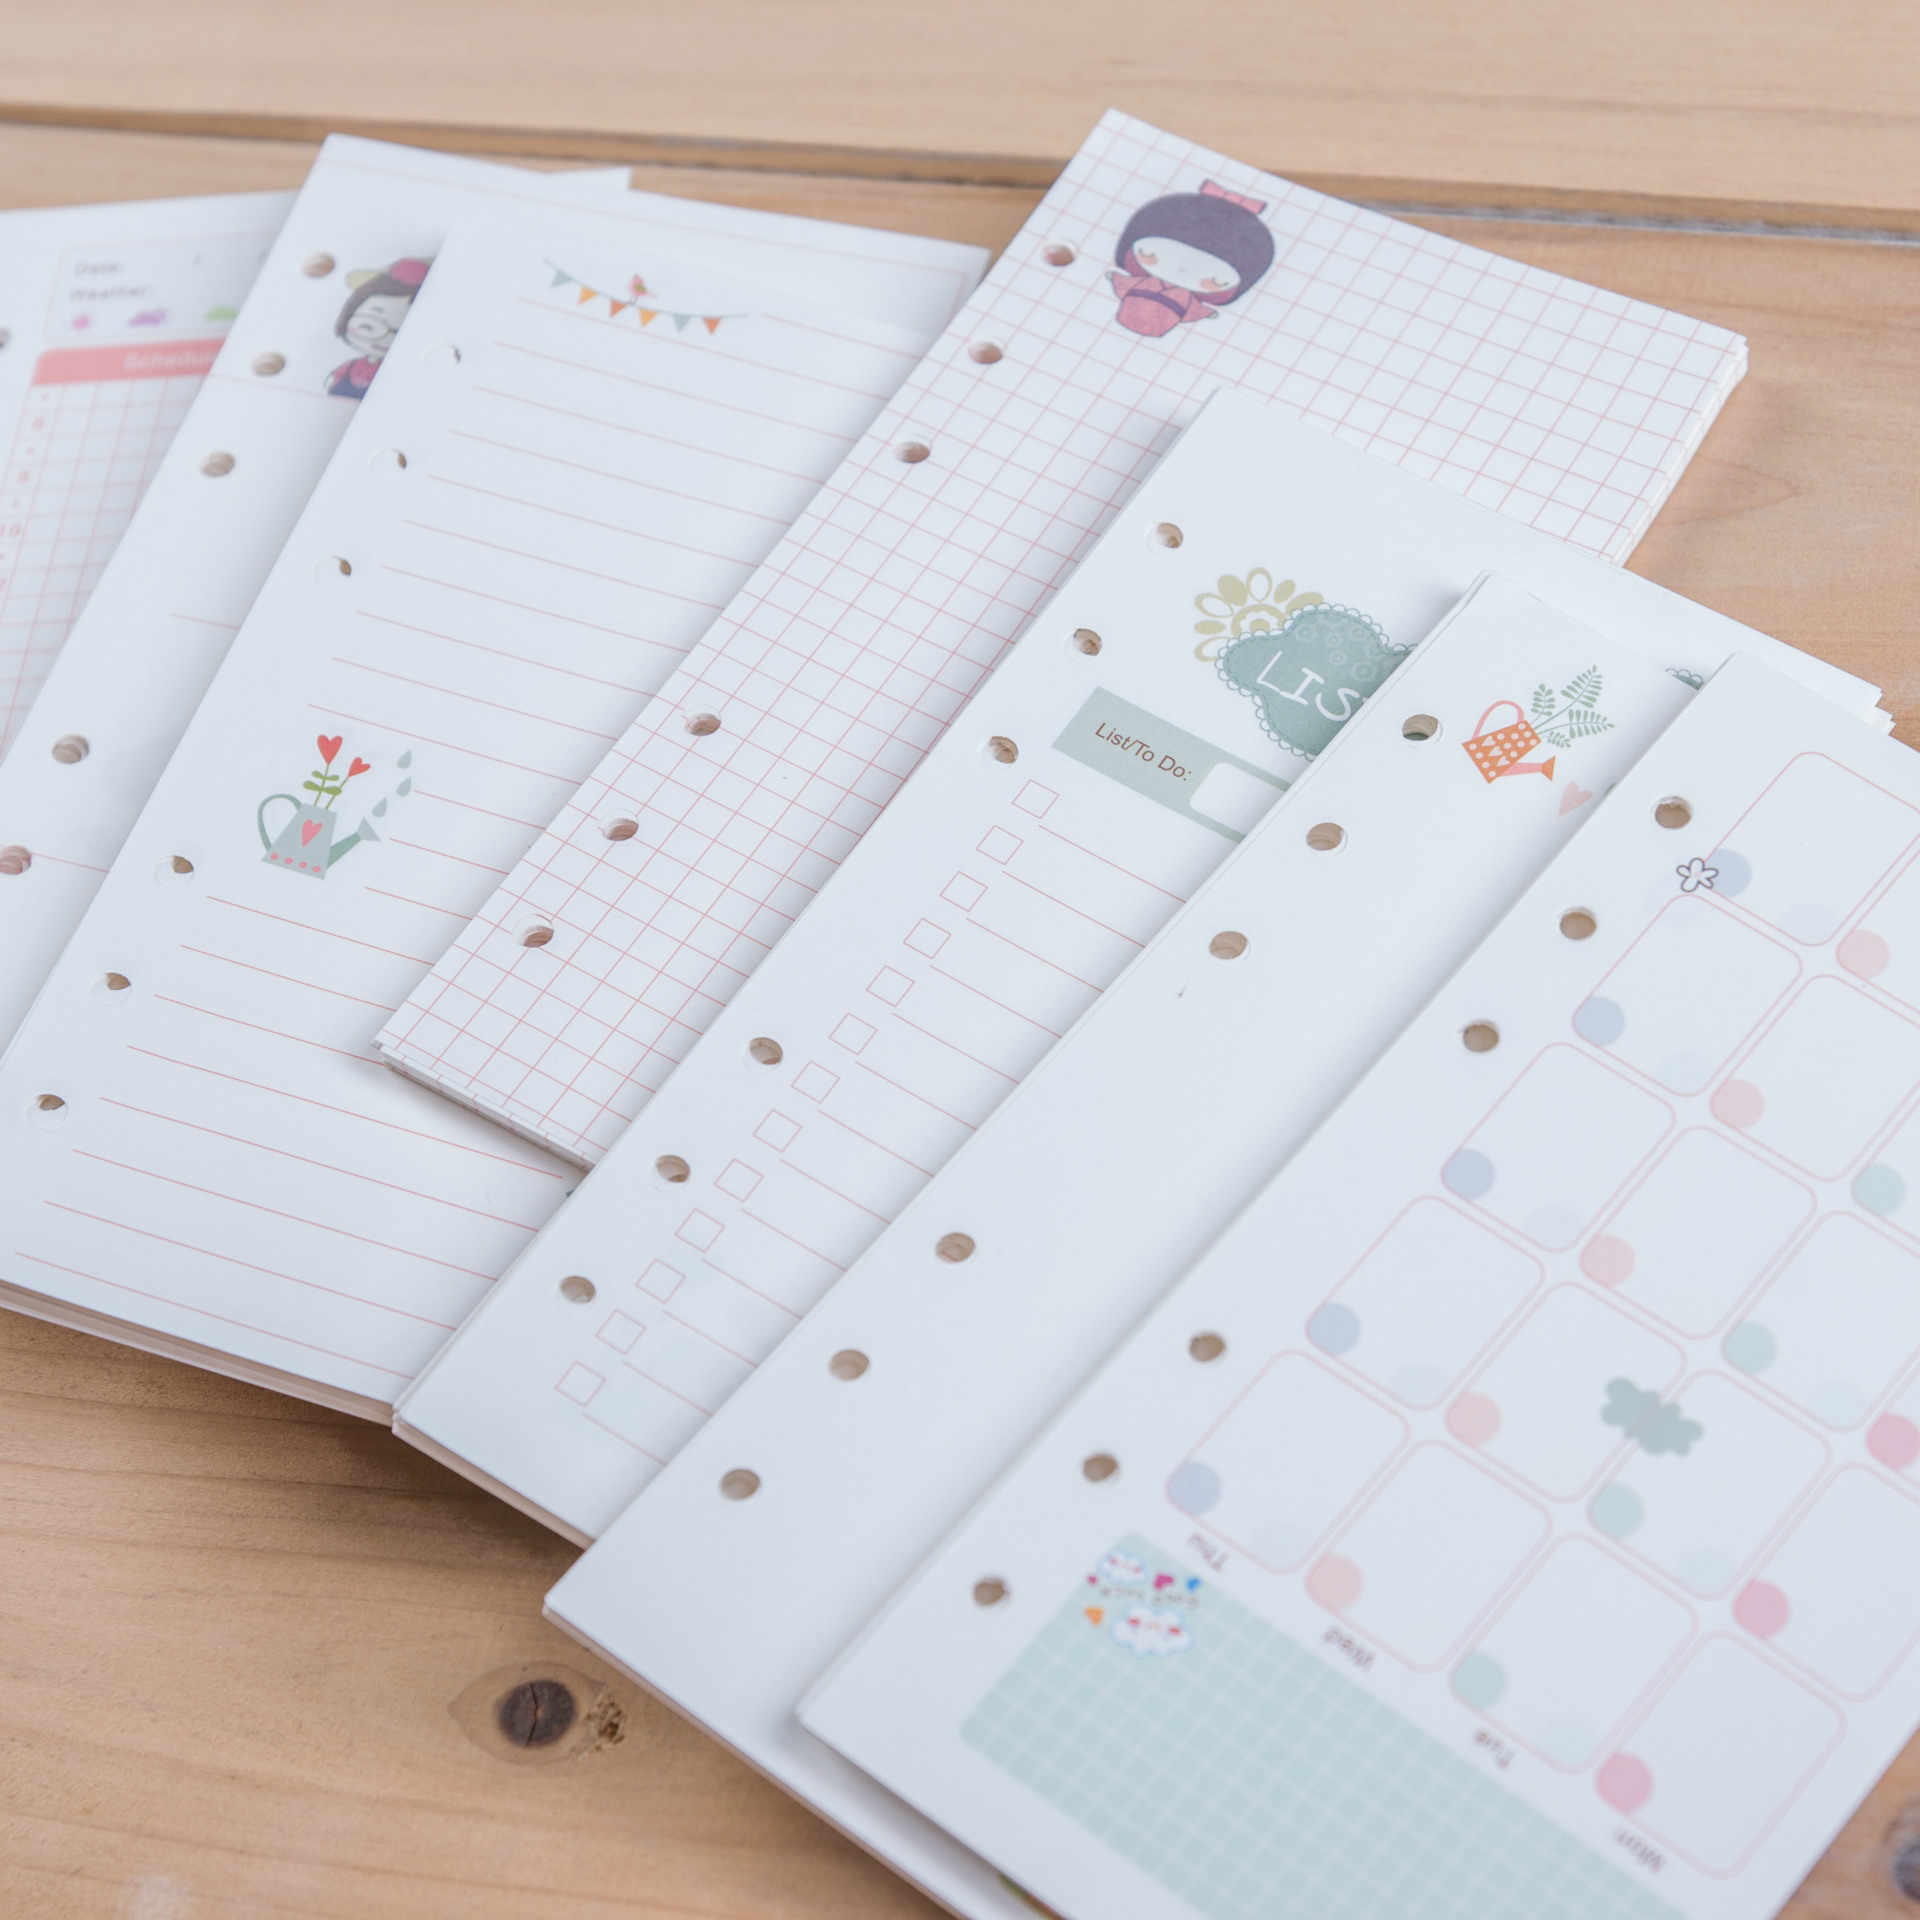 Harphia Cute Girl Series Notebook Refills Papers A5 A6 Diary Color Inner Core Planner Filler Paper Inside Page Gift forfilofax